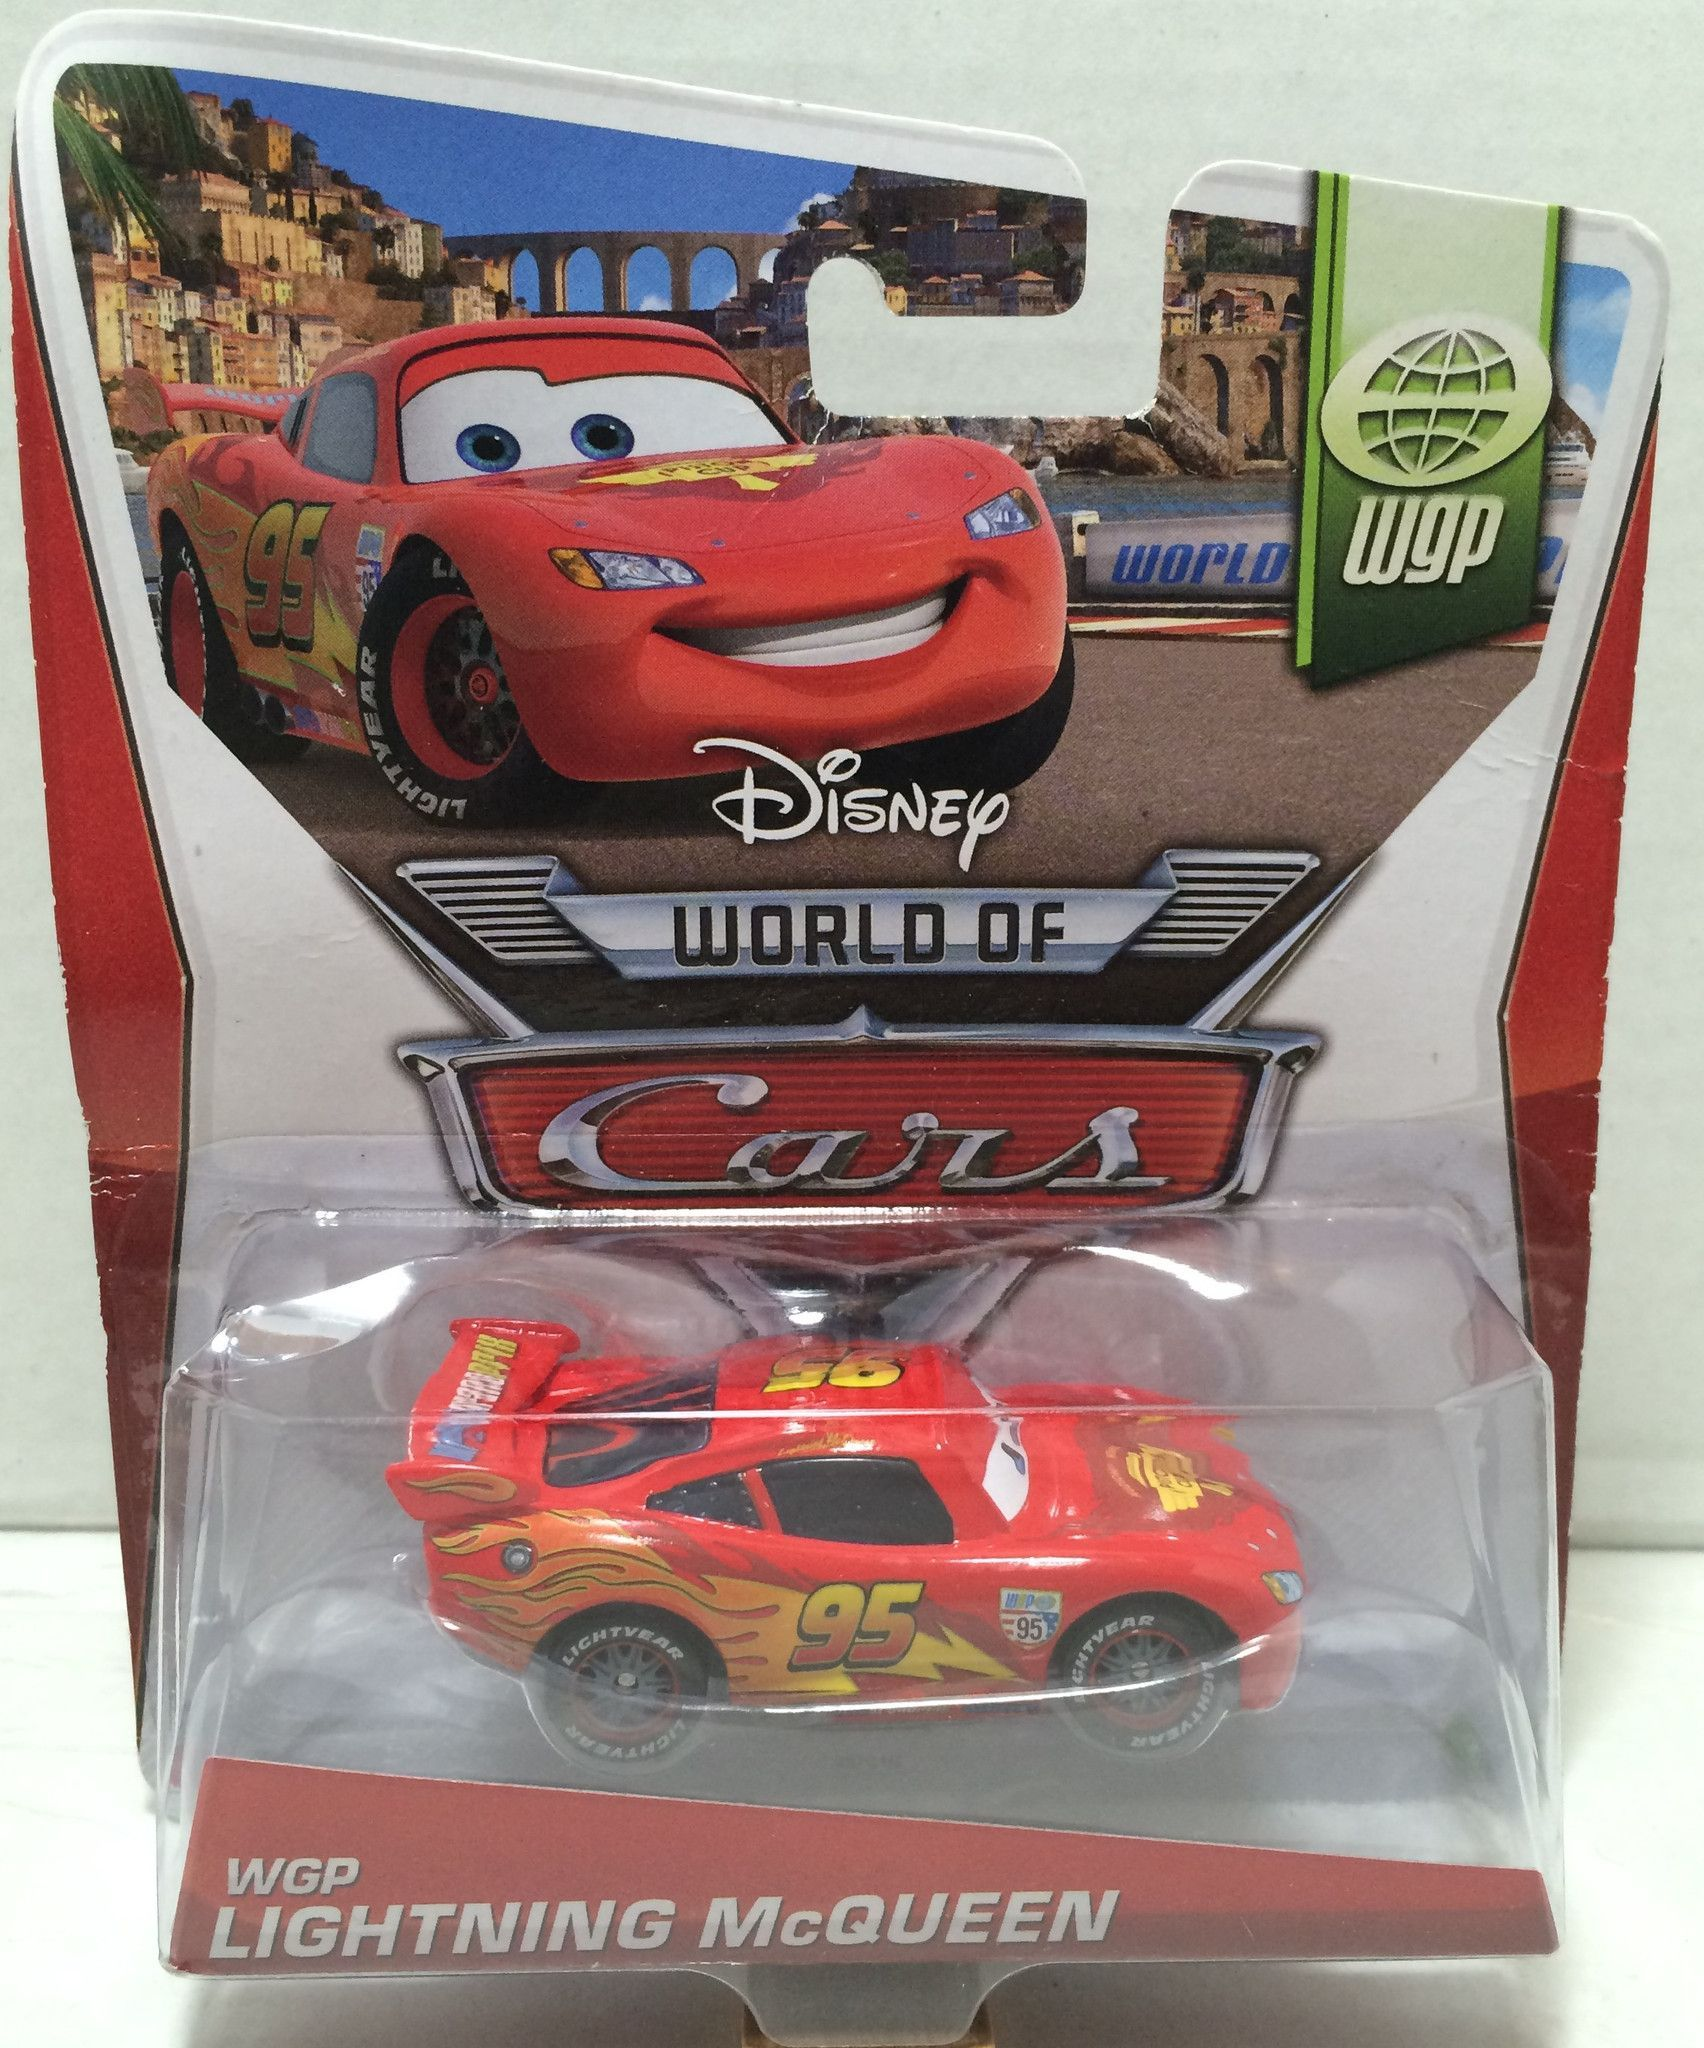 tas010179 disney world of cars die cast car 95 wgp